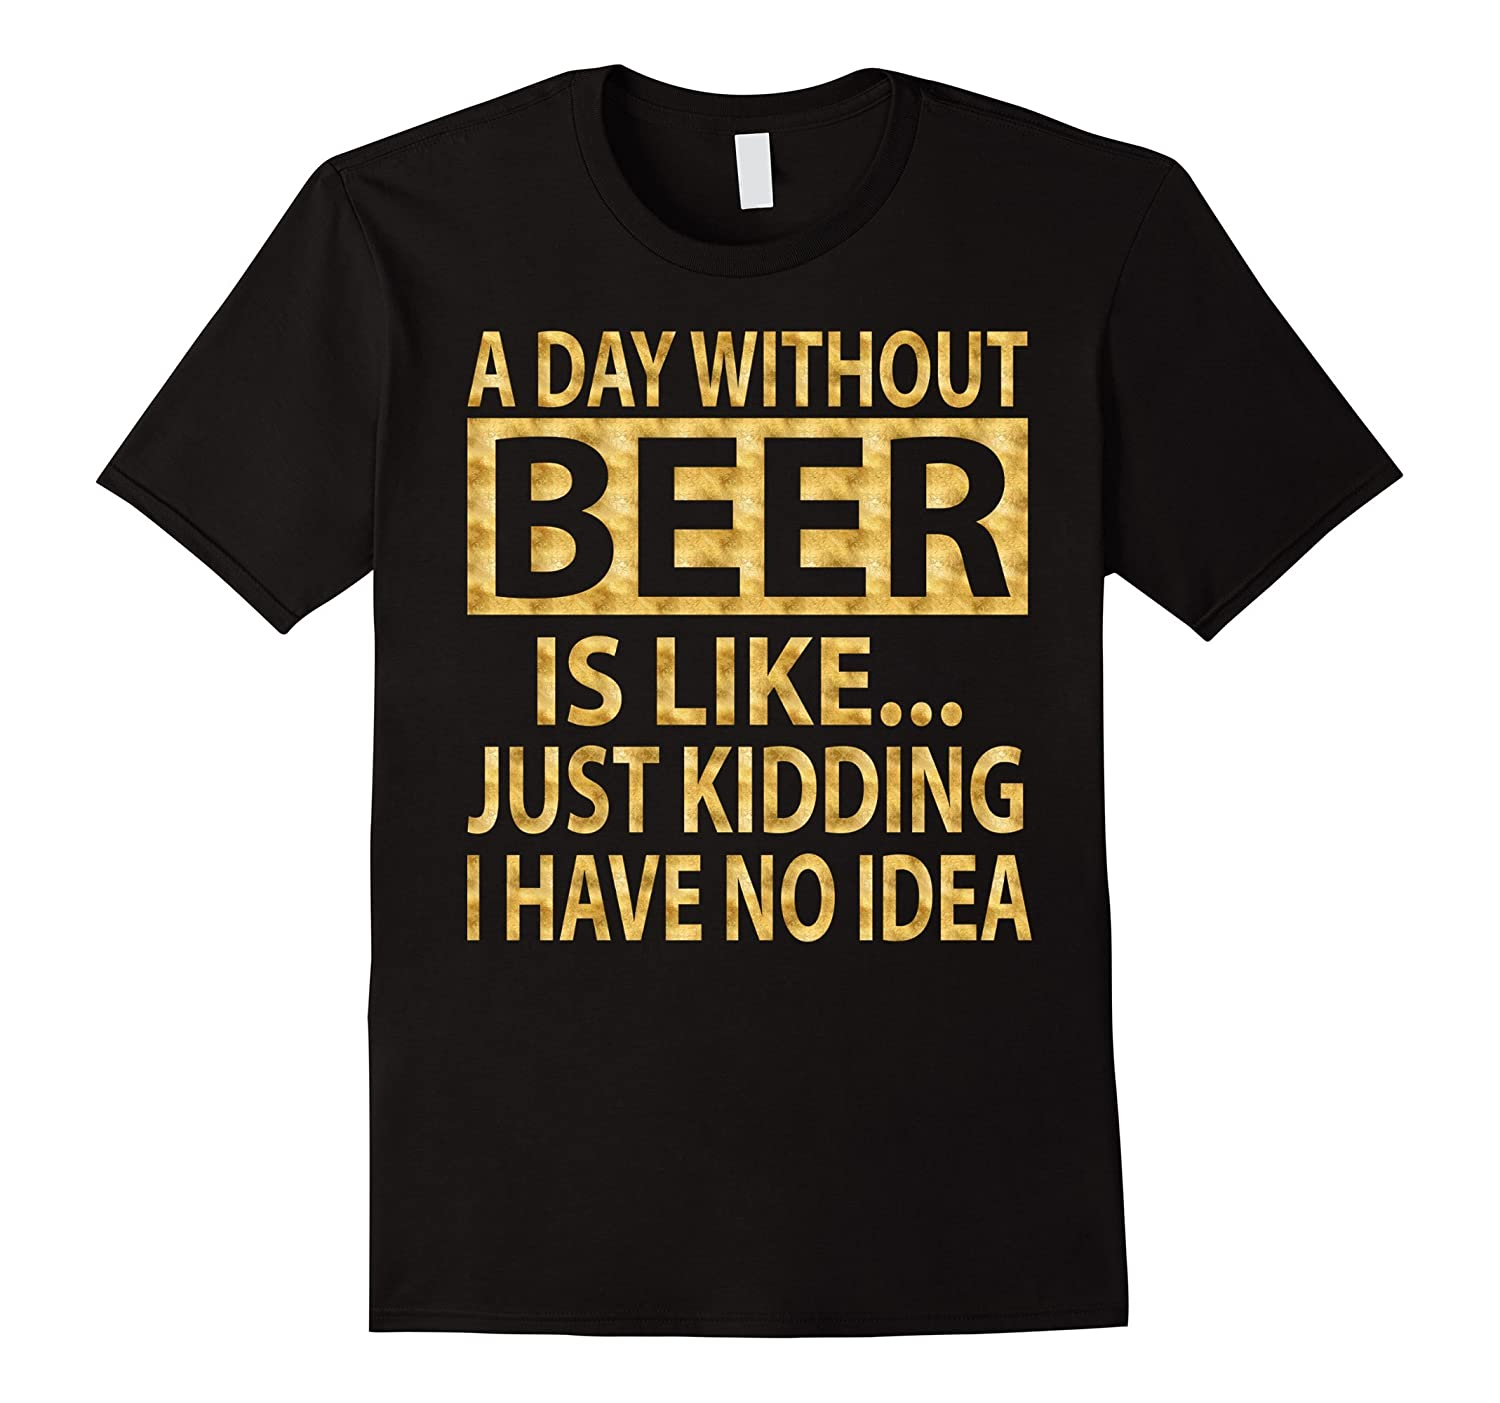 A day without beer is like just kidding T-Shirt Gold Foil-TD